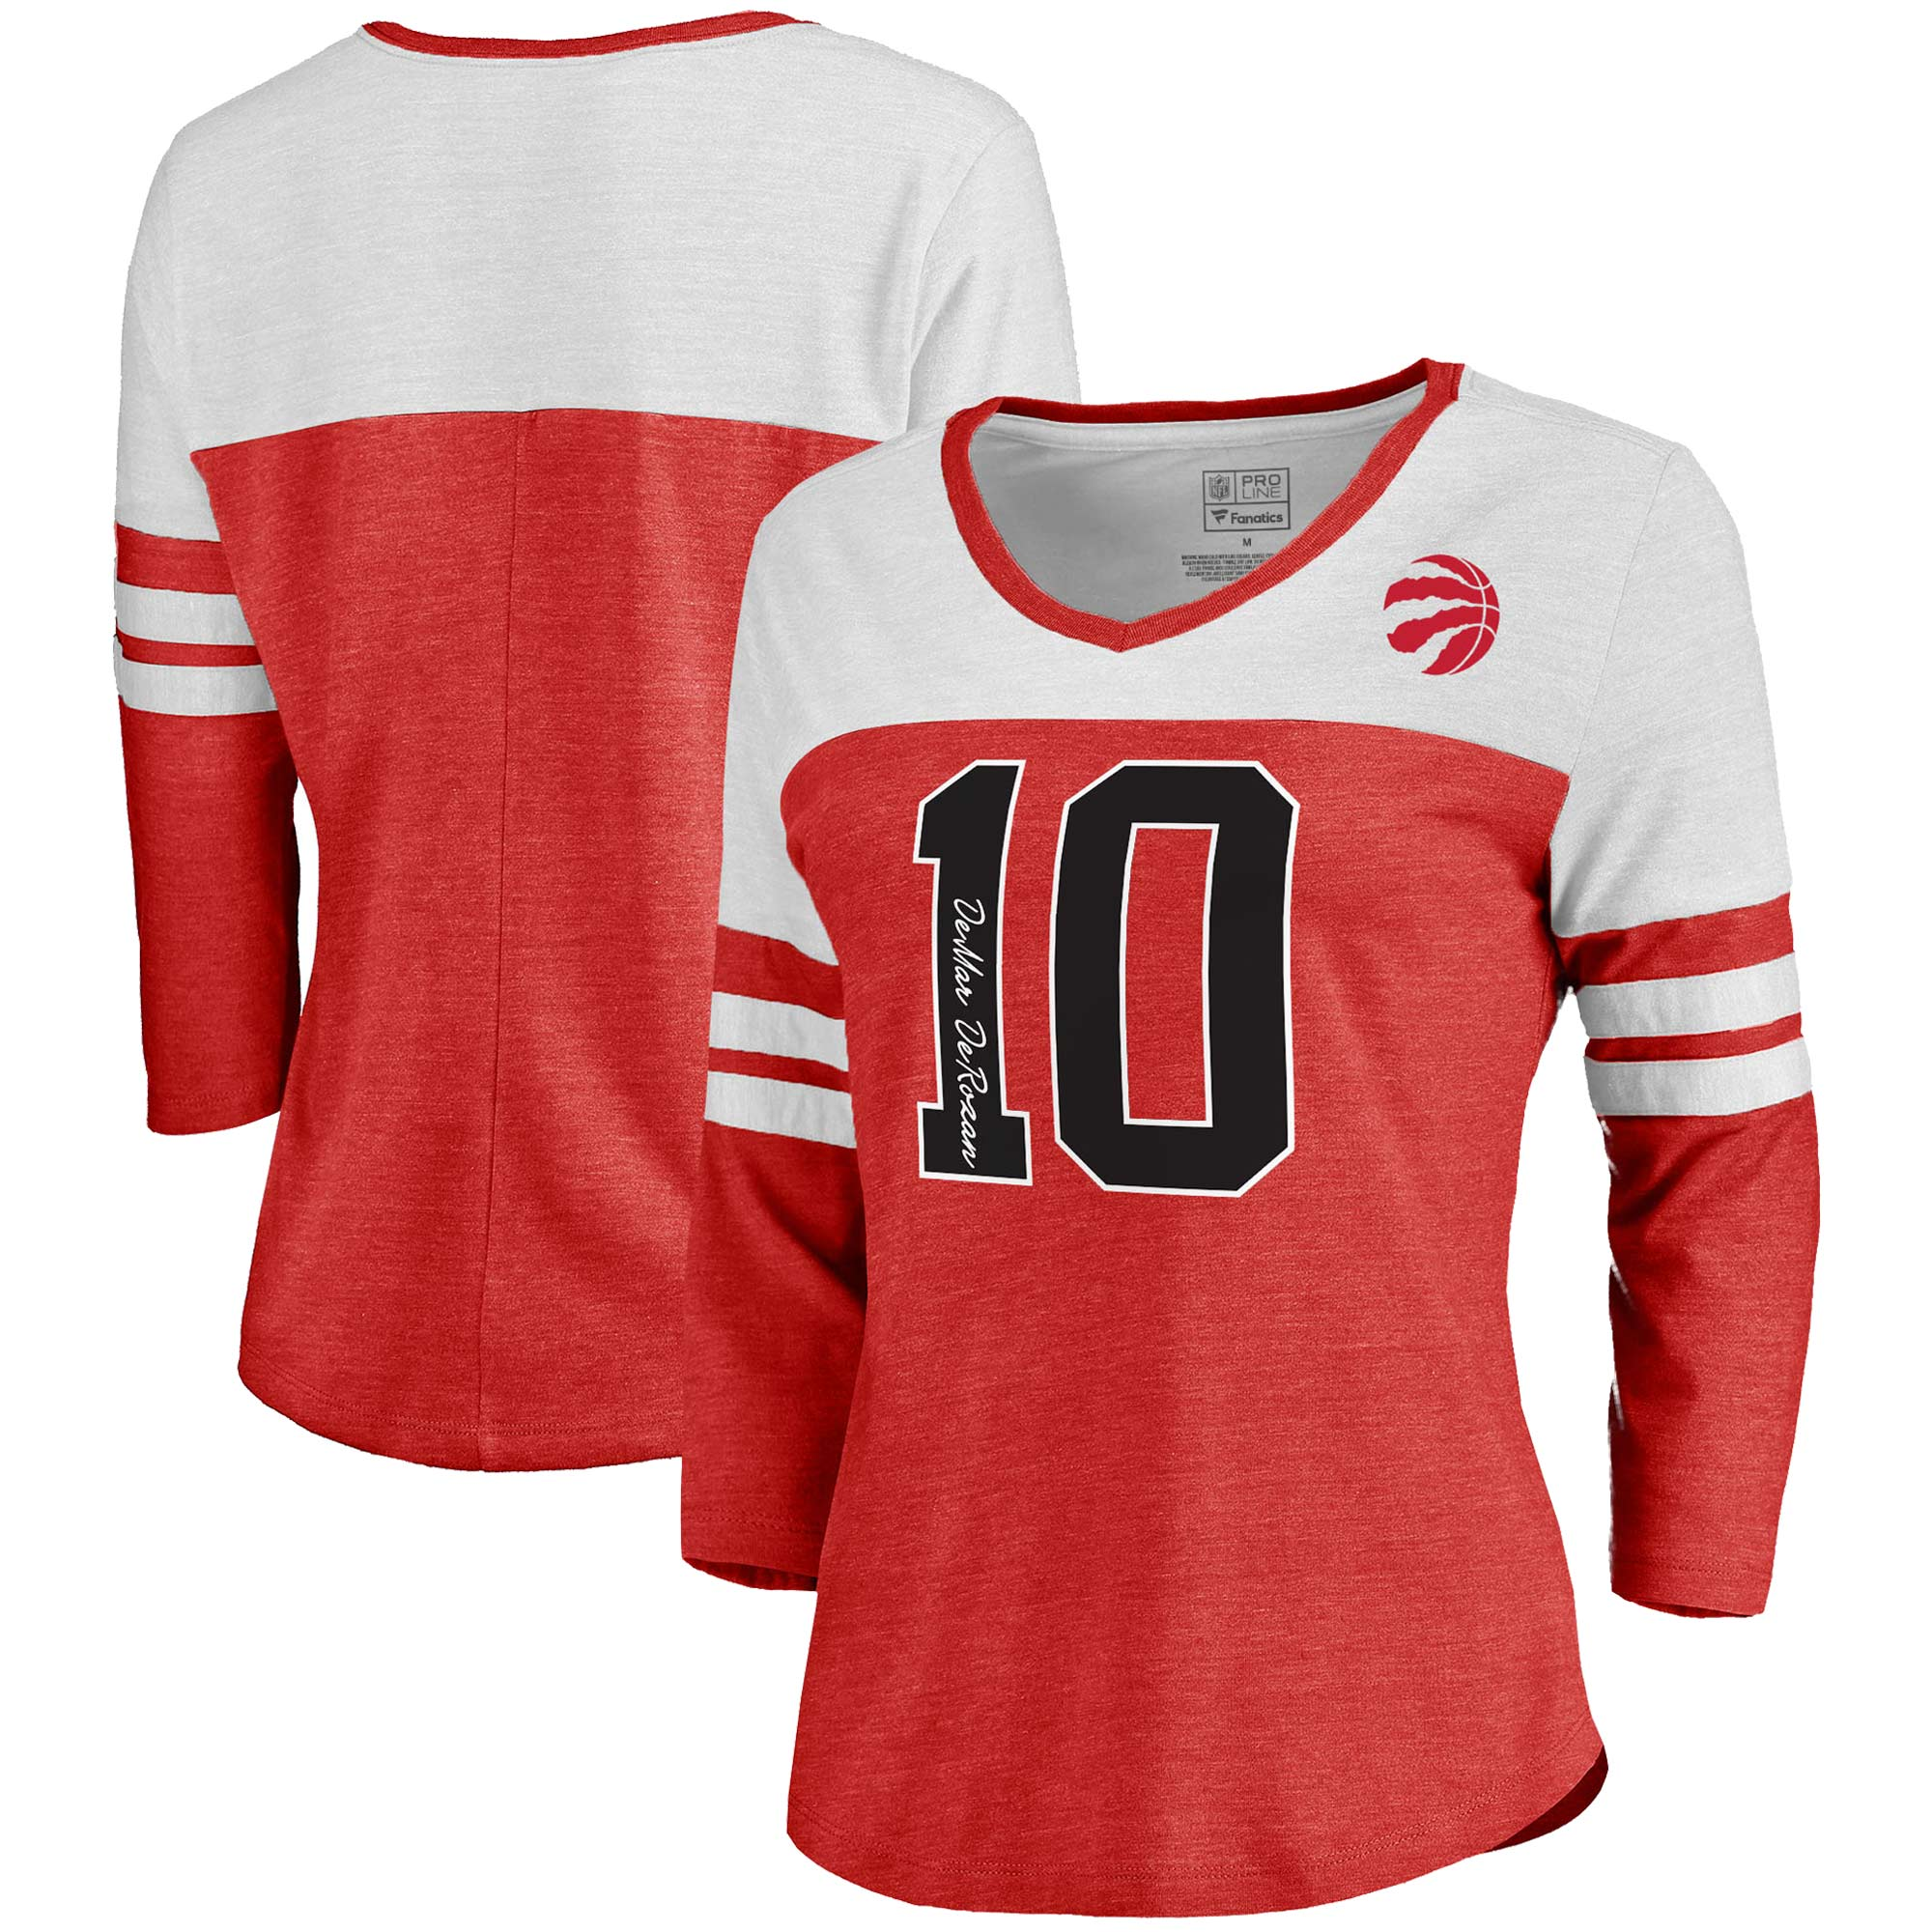 DeMar DeRozan Toronto Raptors Fanatics Branded Women's Starstruck Name & Number Tri-Blend 3/4-Sleeve V-Neck T-Shirt - Red